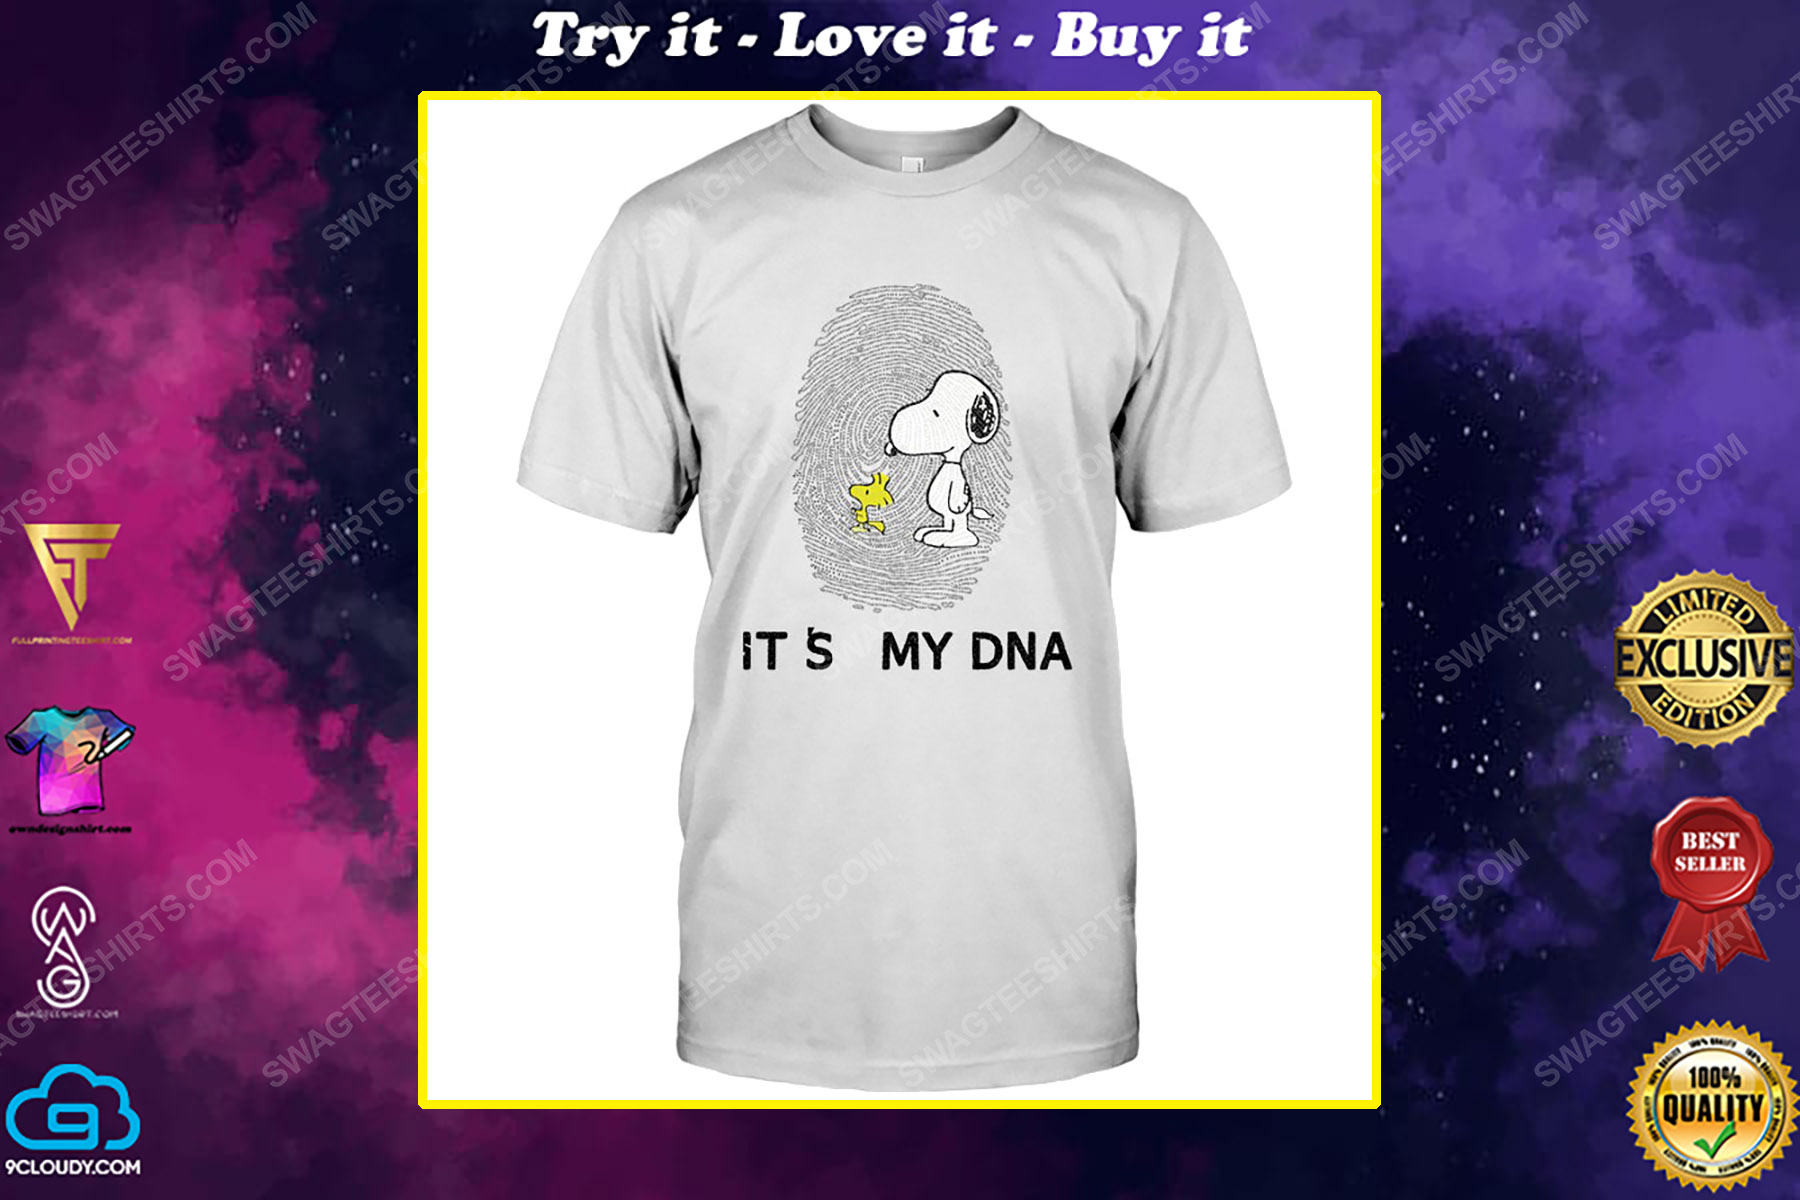 The peanuts snoopy and woodstock it's my dna shirt